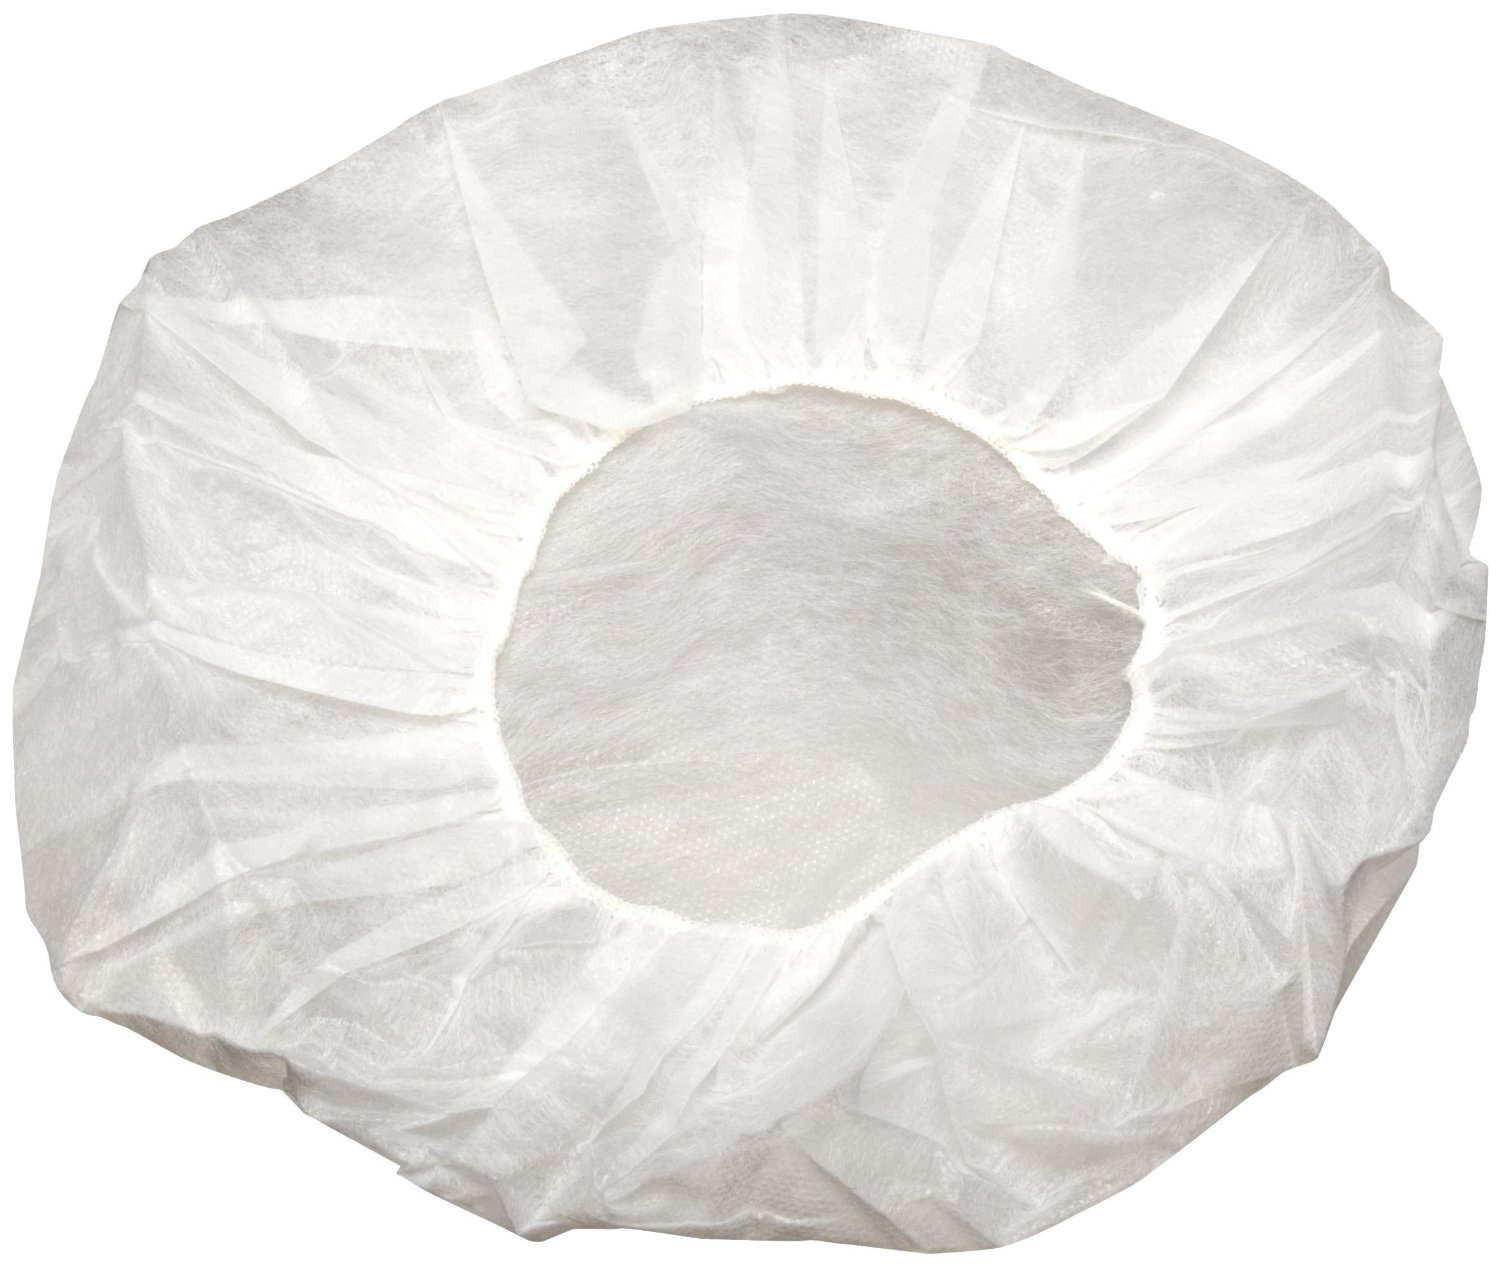 Shield Safety White Bouffant 18'' x 10g, Cap Multipurpose, Disposable and Latex Free, (500 Count)